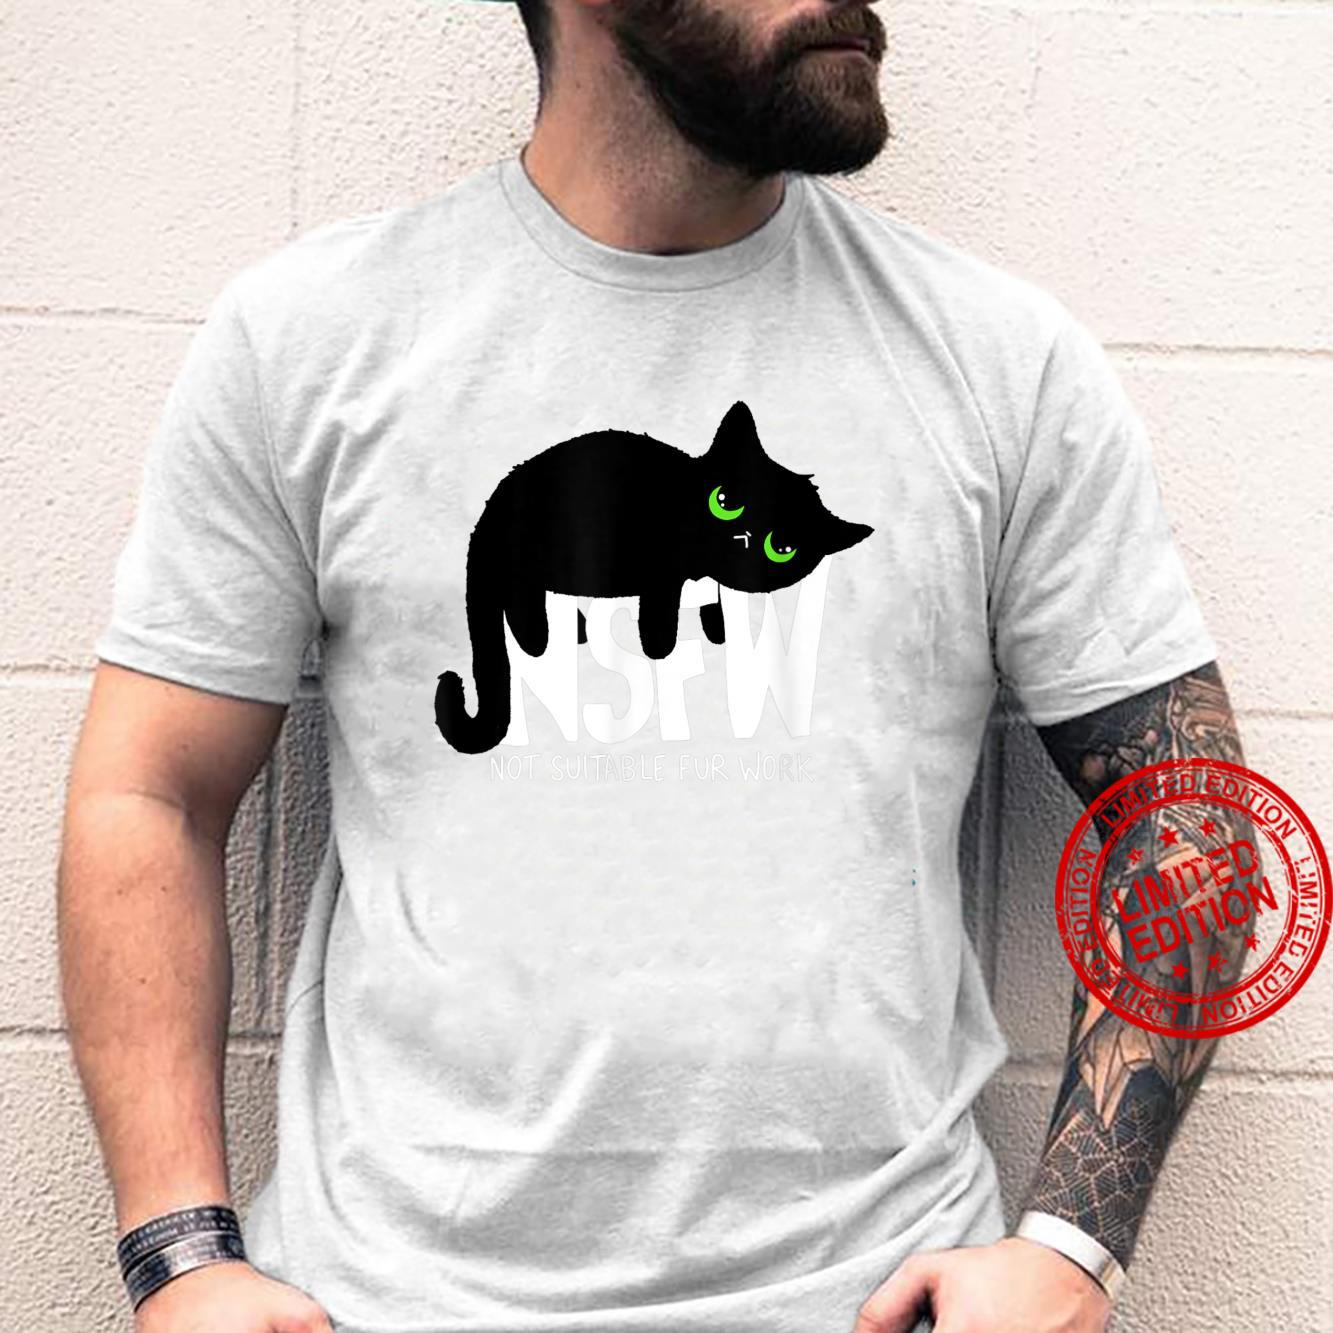 NSFW Not Suitable For Work Lazy Procrastinating Cat Shirt